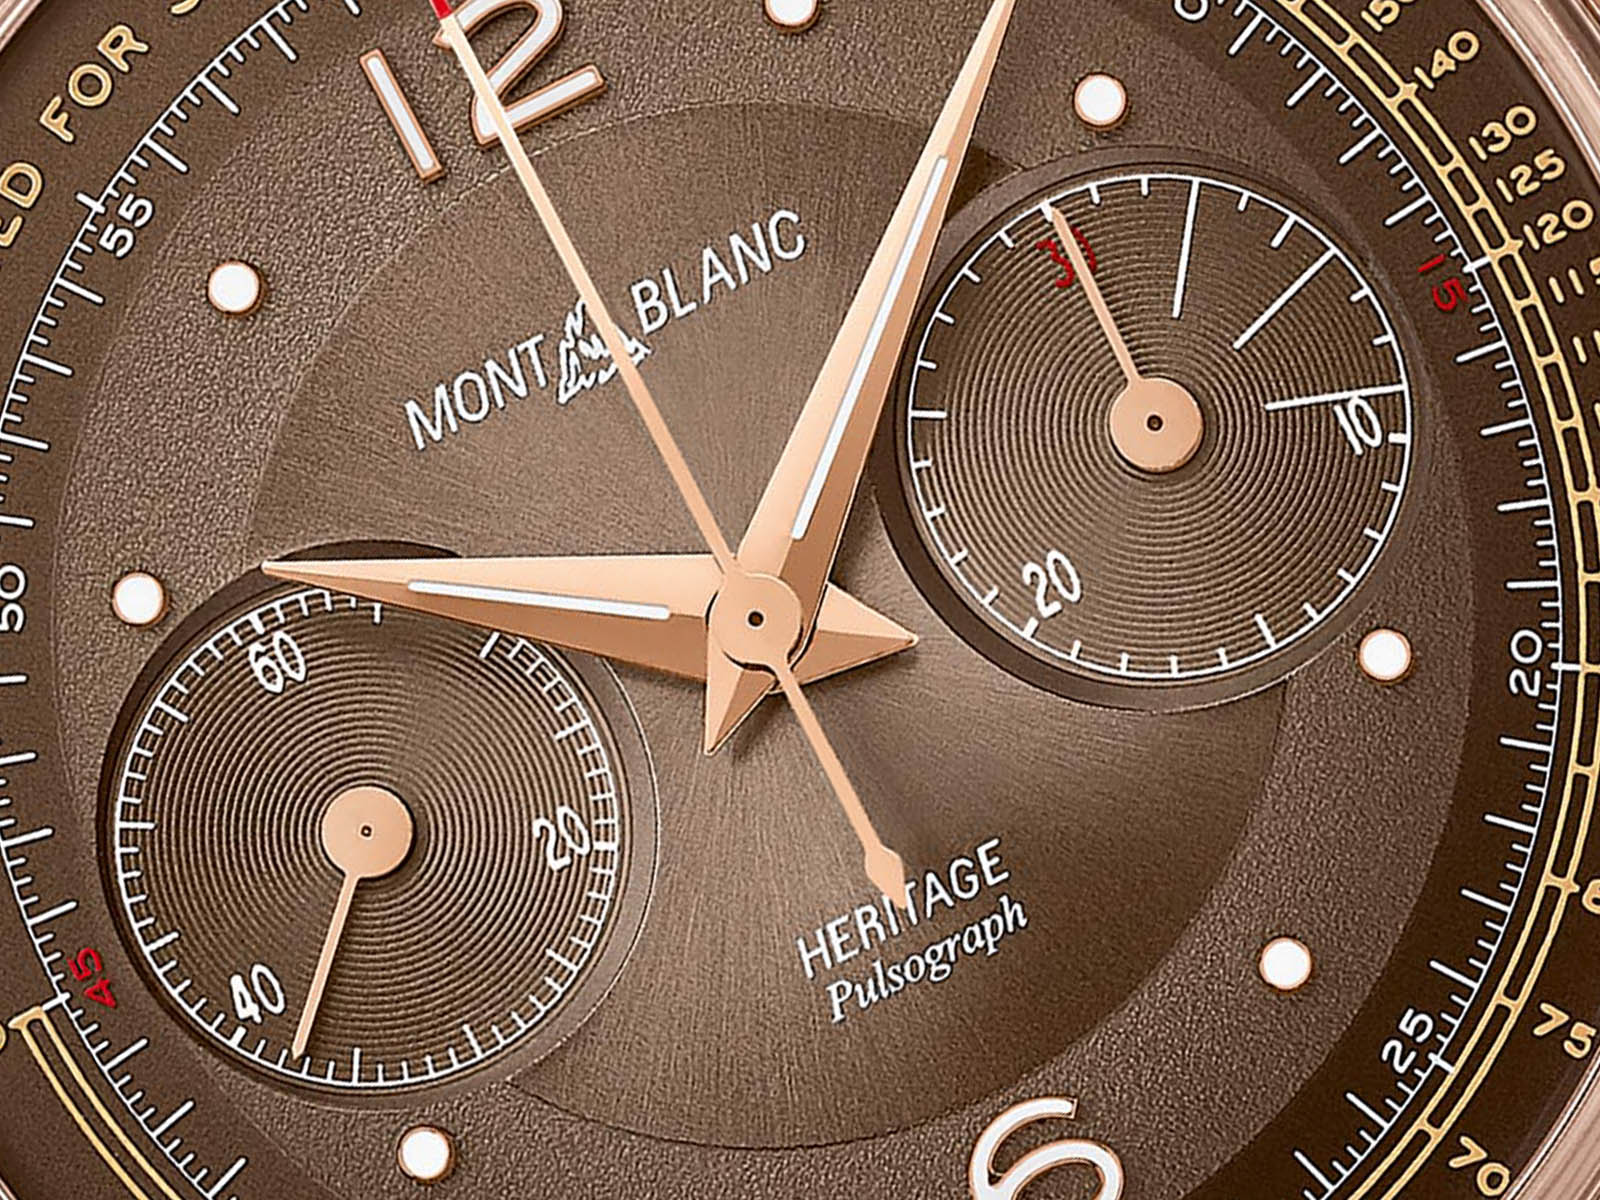 126095-montblanc-heritage-manufacture-pulsograph-limited-edition-rose-gold-3.jpg